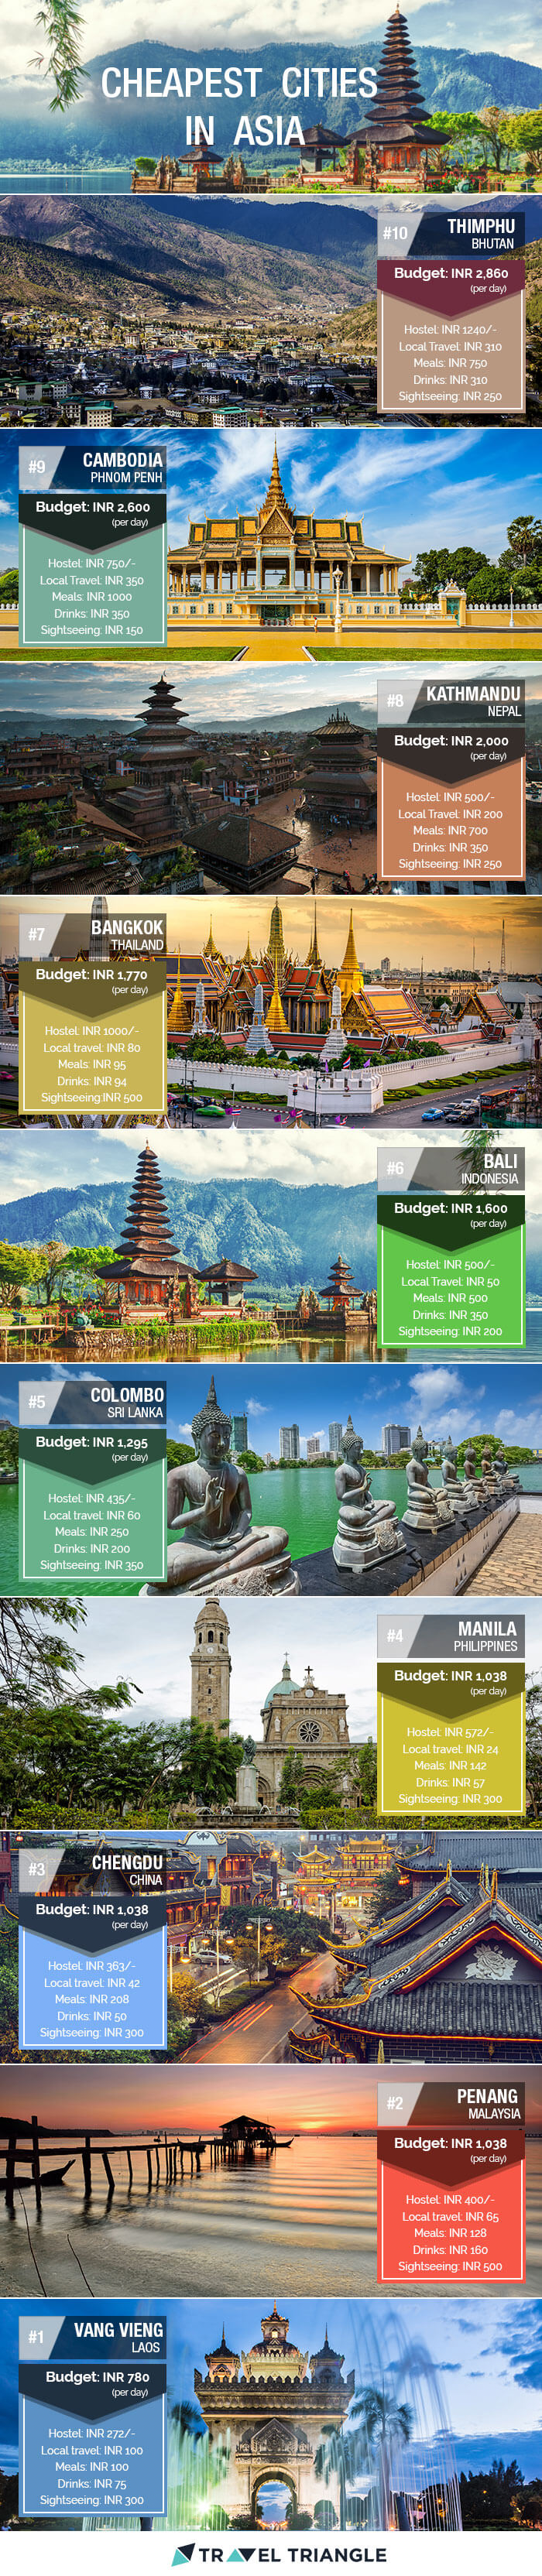 cheapest cities in Asia for Indians to explore